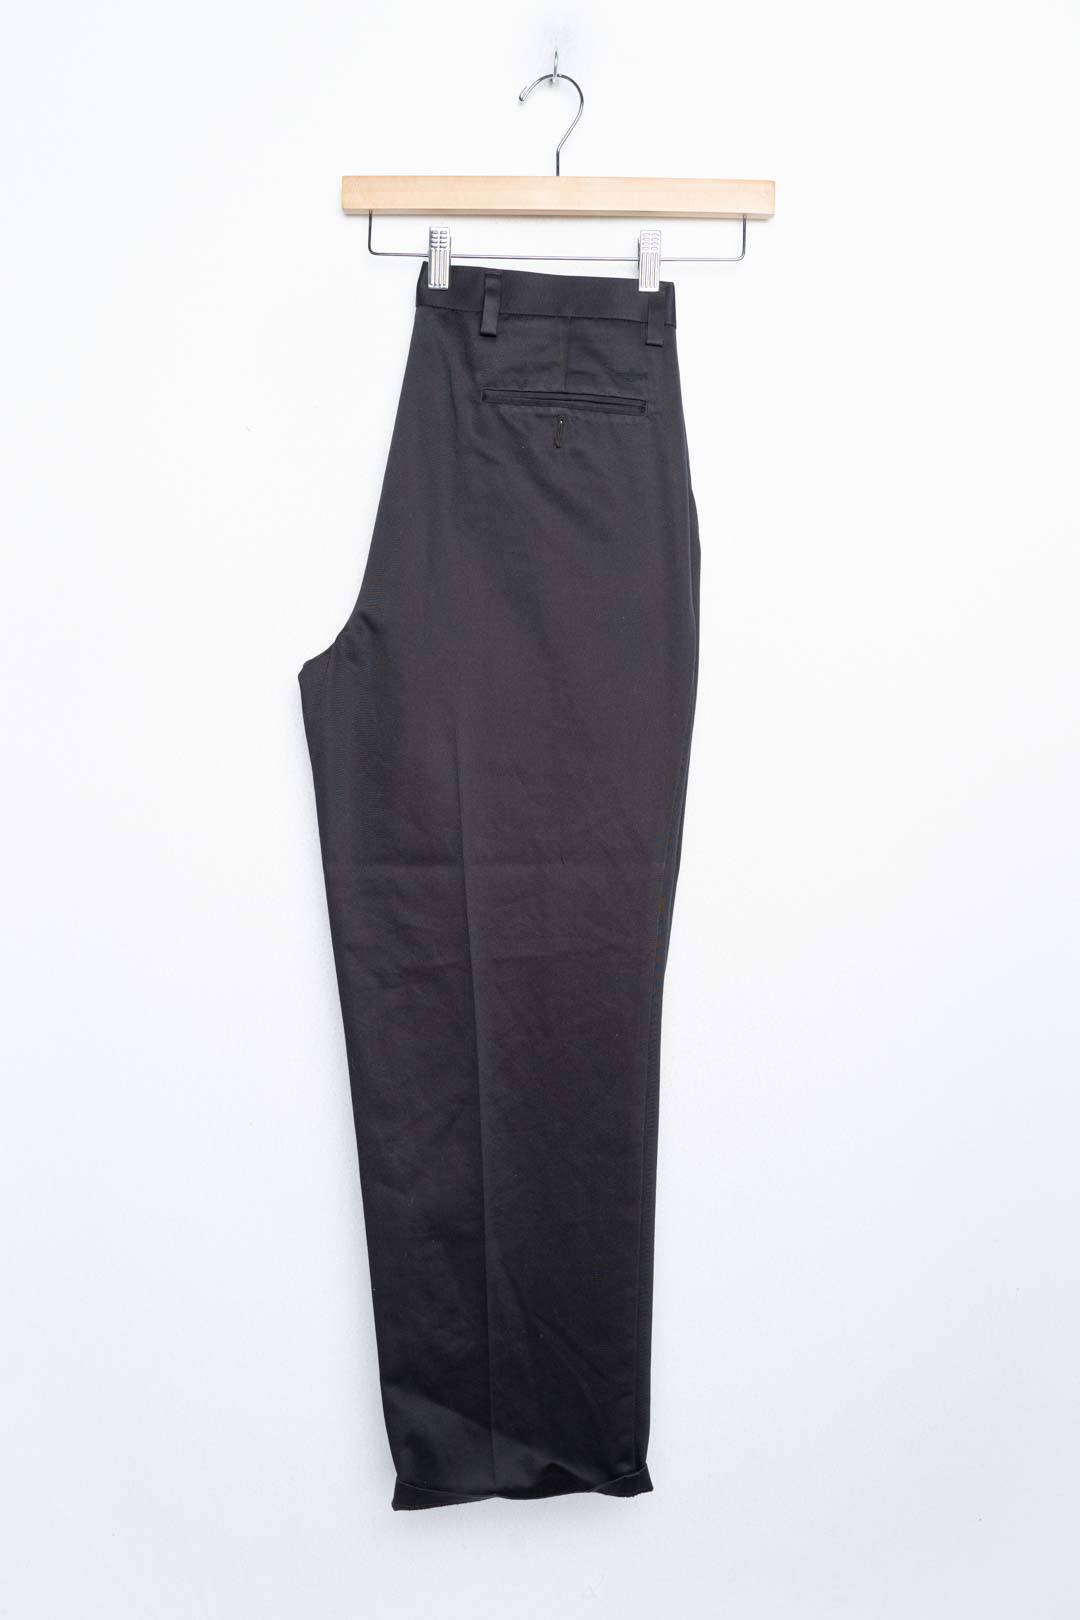 Dockers Black Chino Trousers - VinoKilo.com